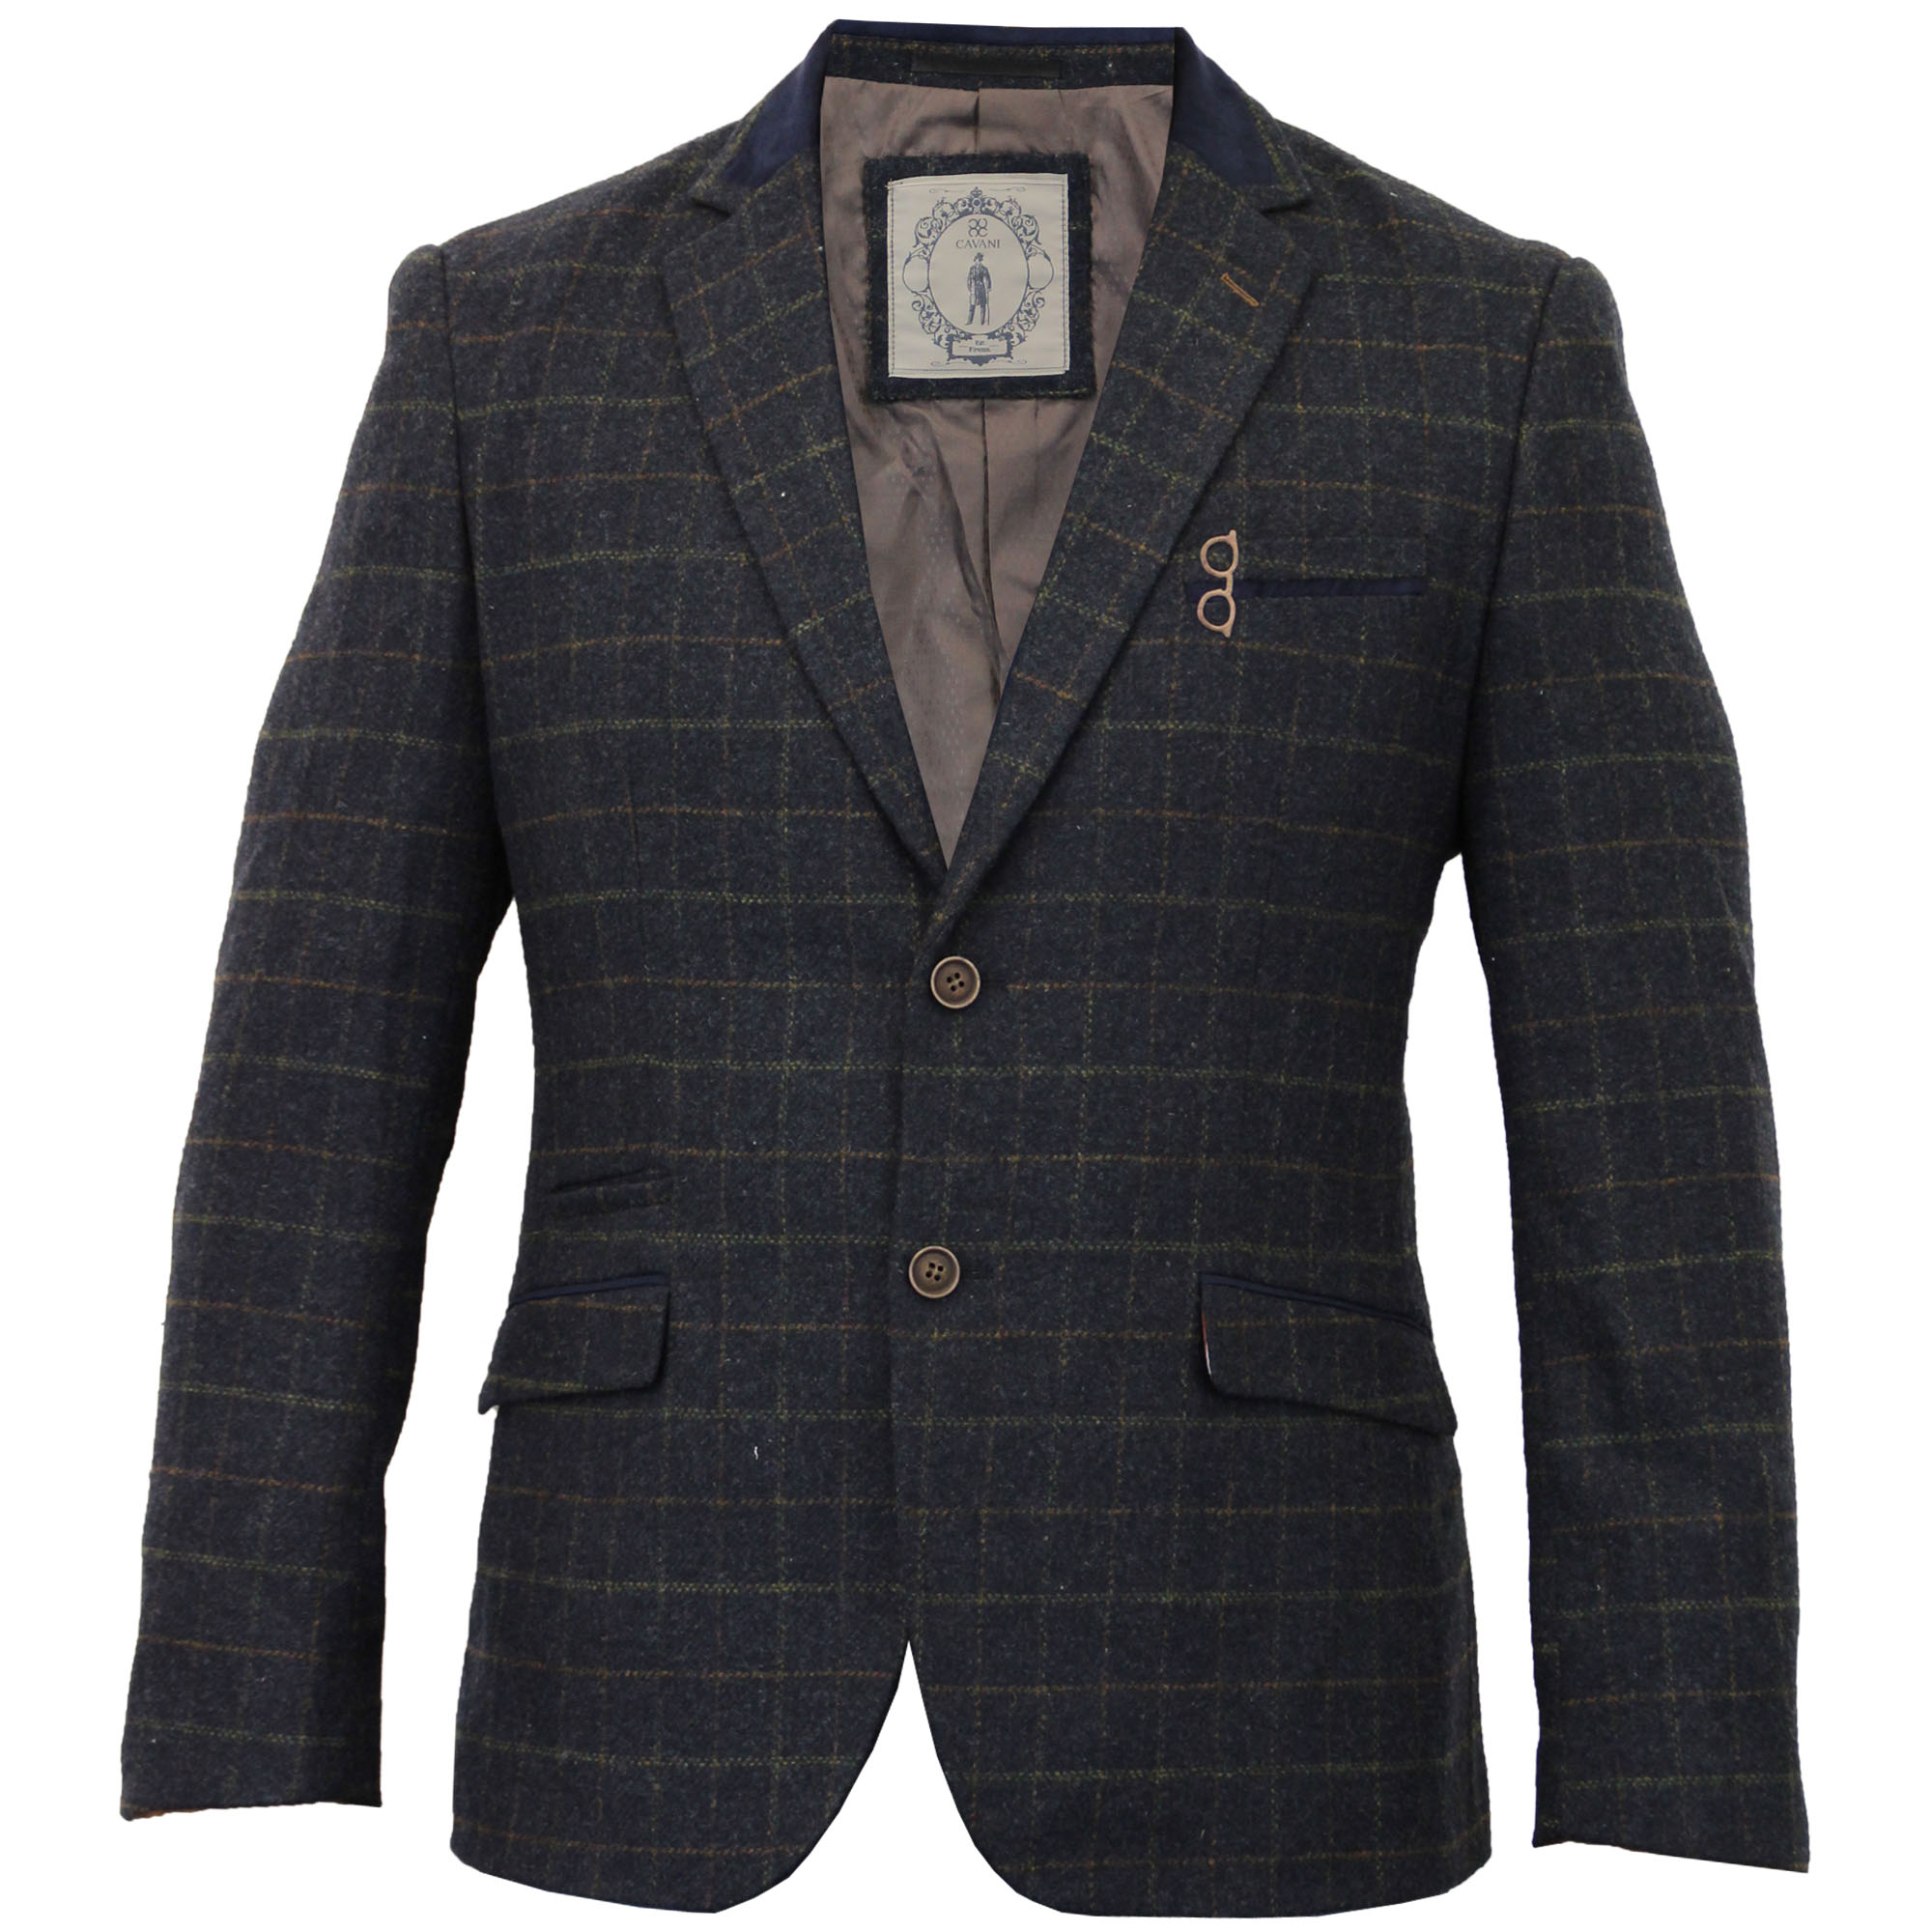 Shop for men's Blazers online at getson.ga Browse the latest SportCoats styles for men from Jos. A Bank. FREE shipping on orders over $